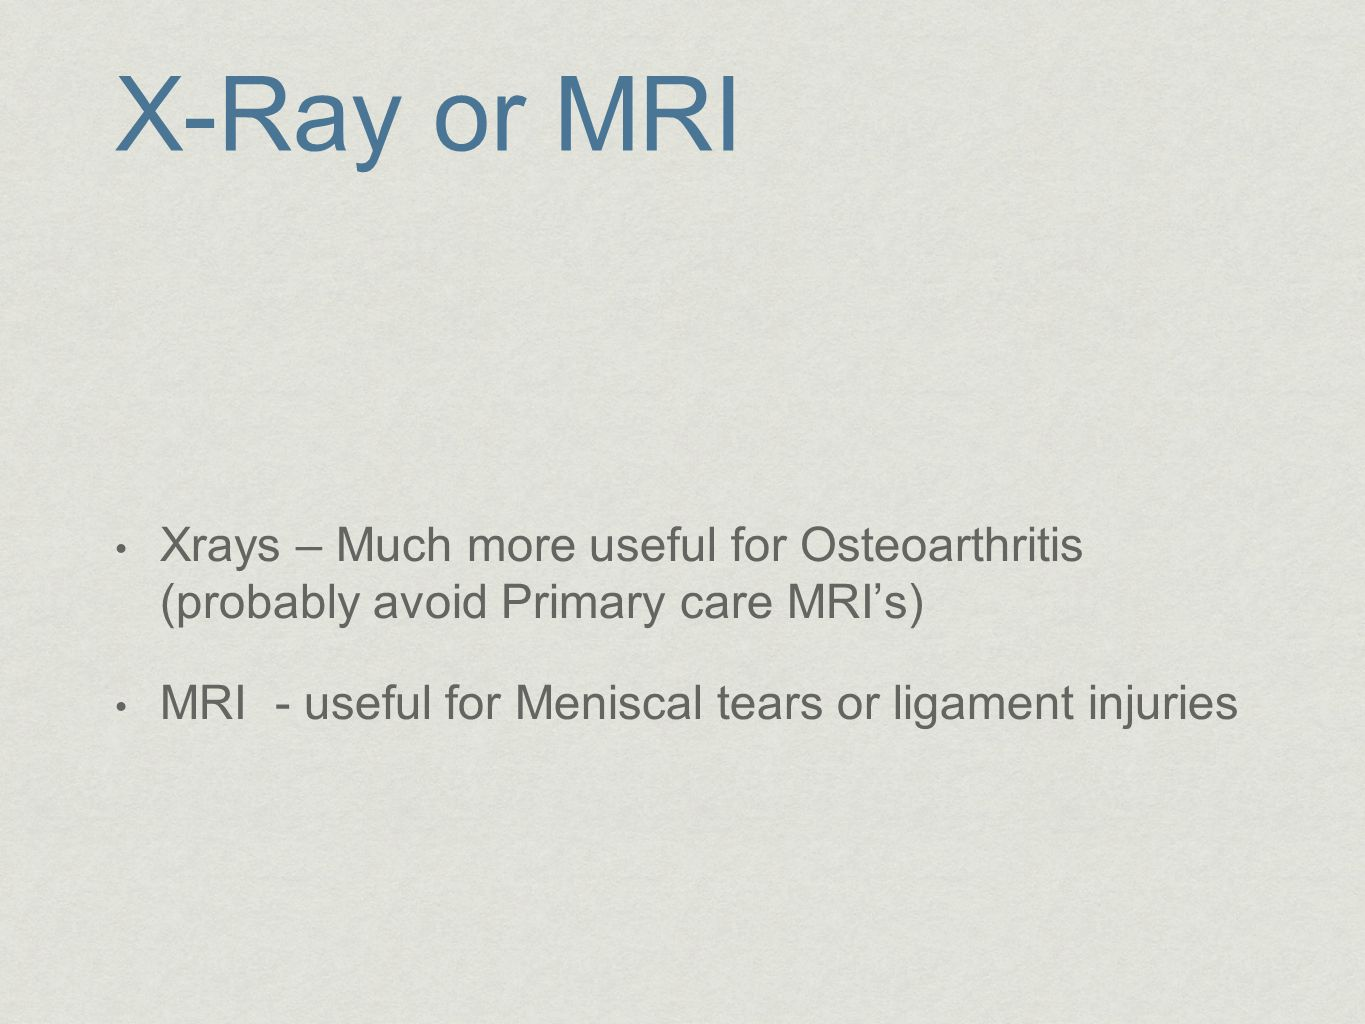 X-Ray or MRI Xrays – Much more useful for Osteoarthritis (probably avoid Primary care MRI's) MRI - useful for Meniscal tears or ligament injuries.